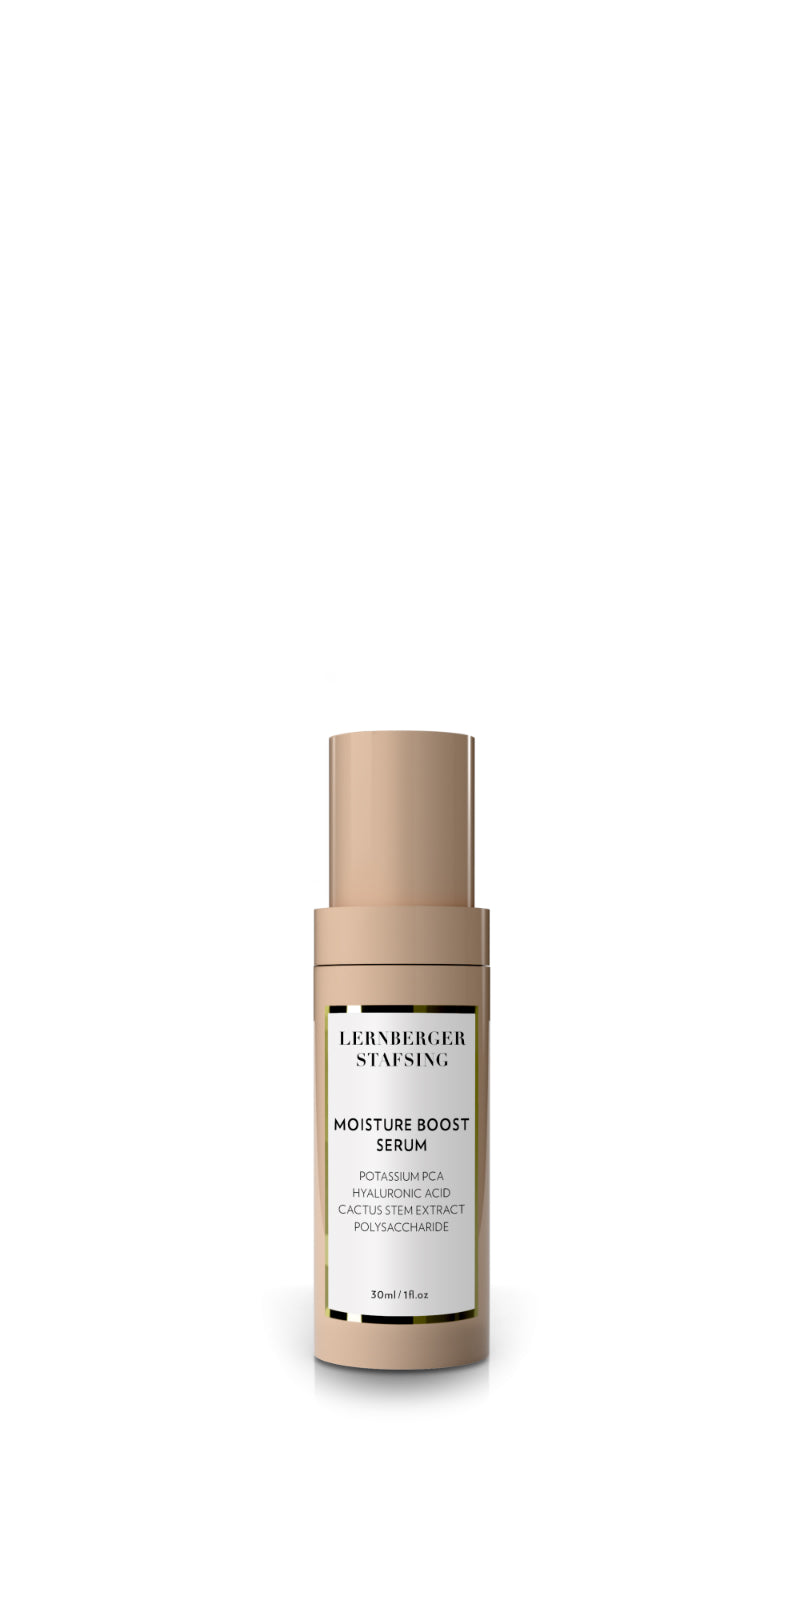 Lernberger-Stafsing MOISTURE boost serum